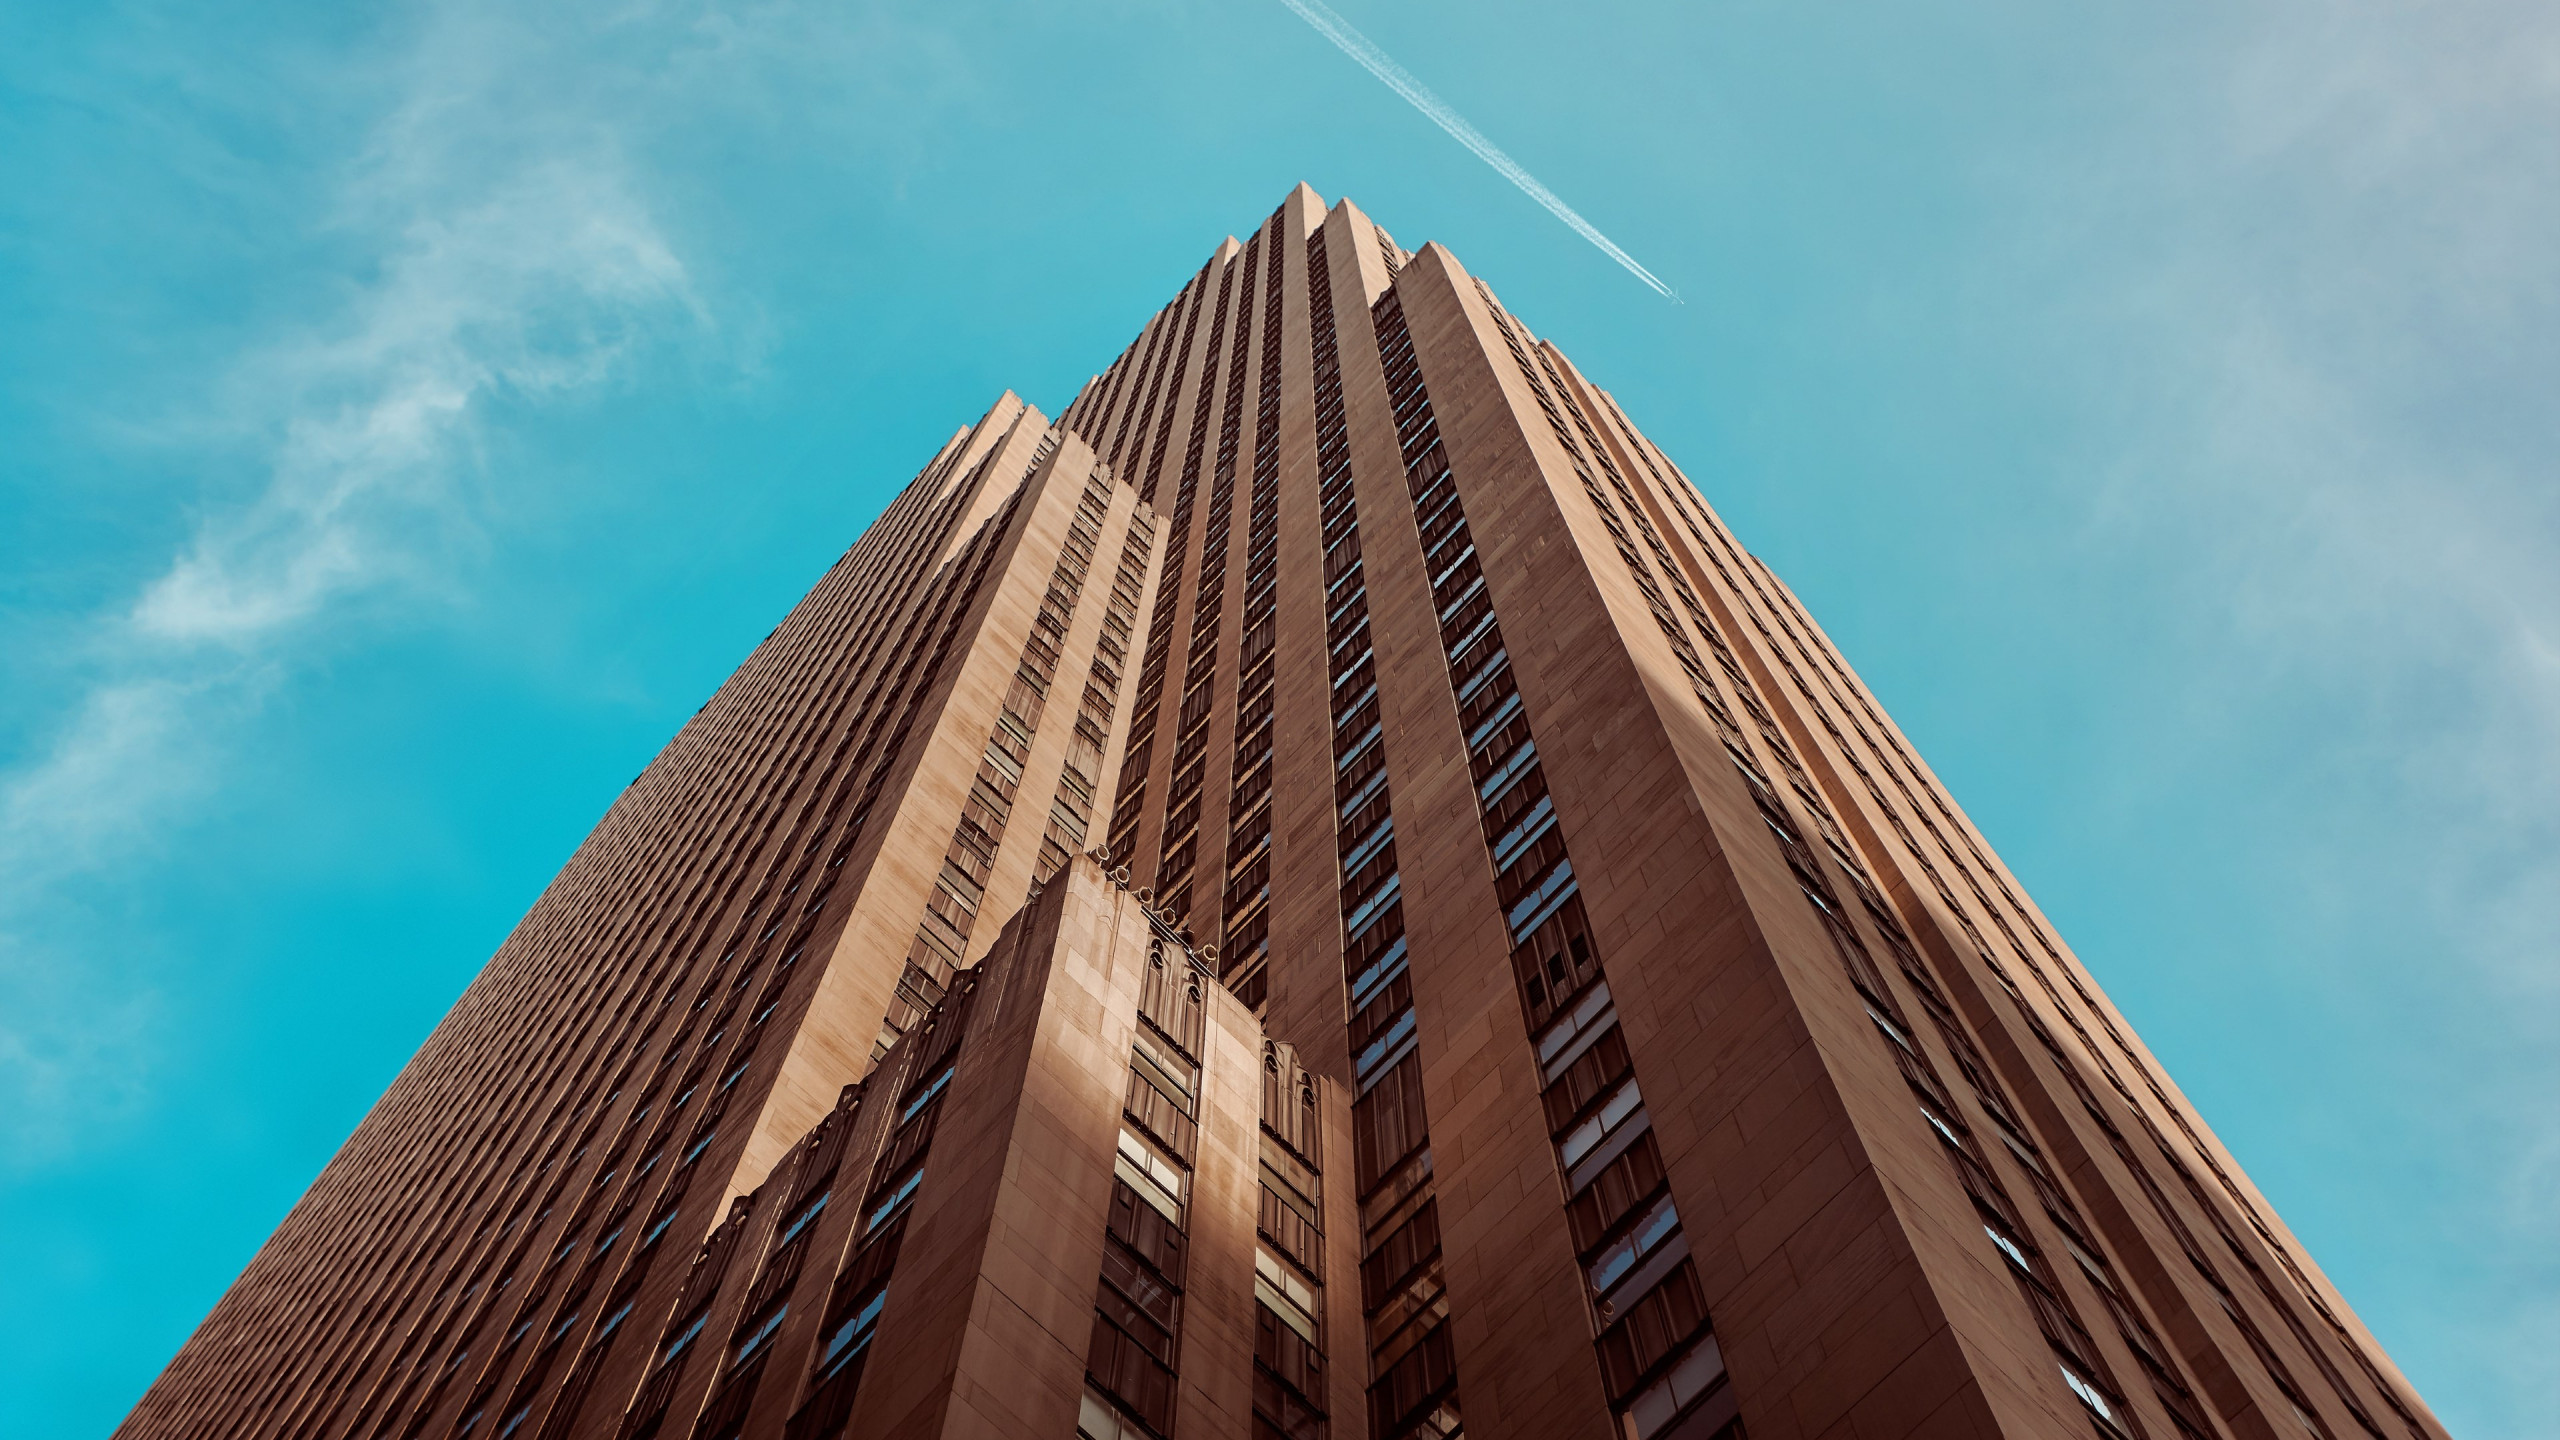 Rockefeller building touching the sky wallpaper 2560x1440